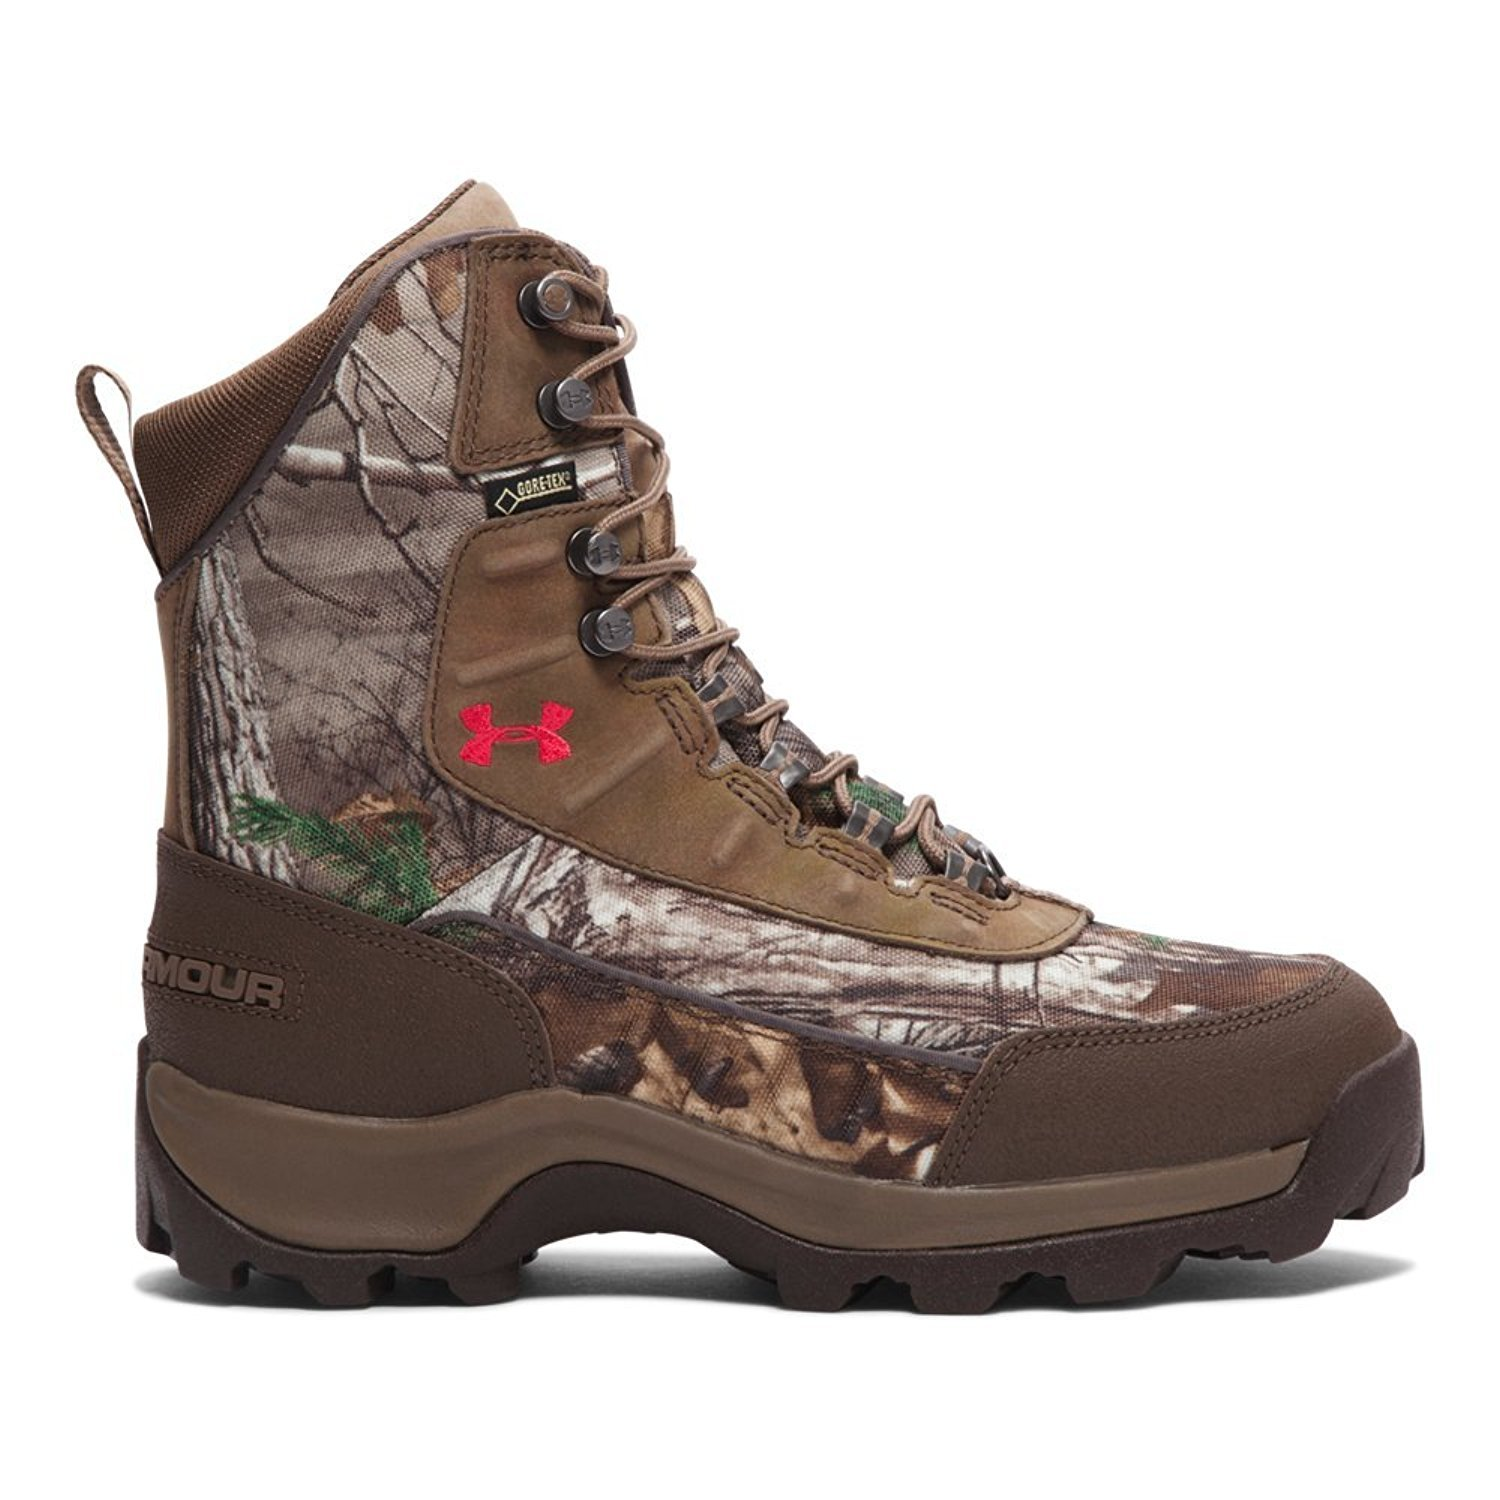 Under Armour UA Brow Tine 800 Boot - Women's Realtree AP-Xtra / Uniform / Perfection 7.5